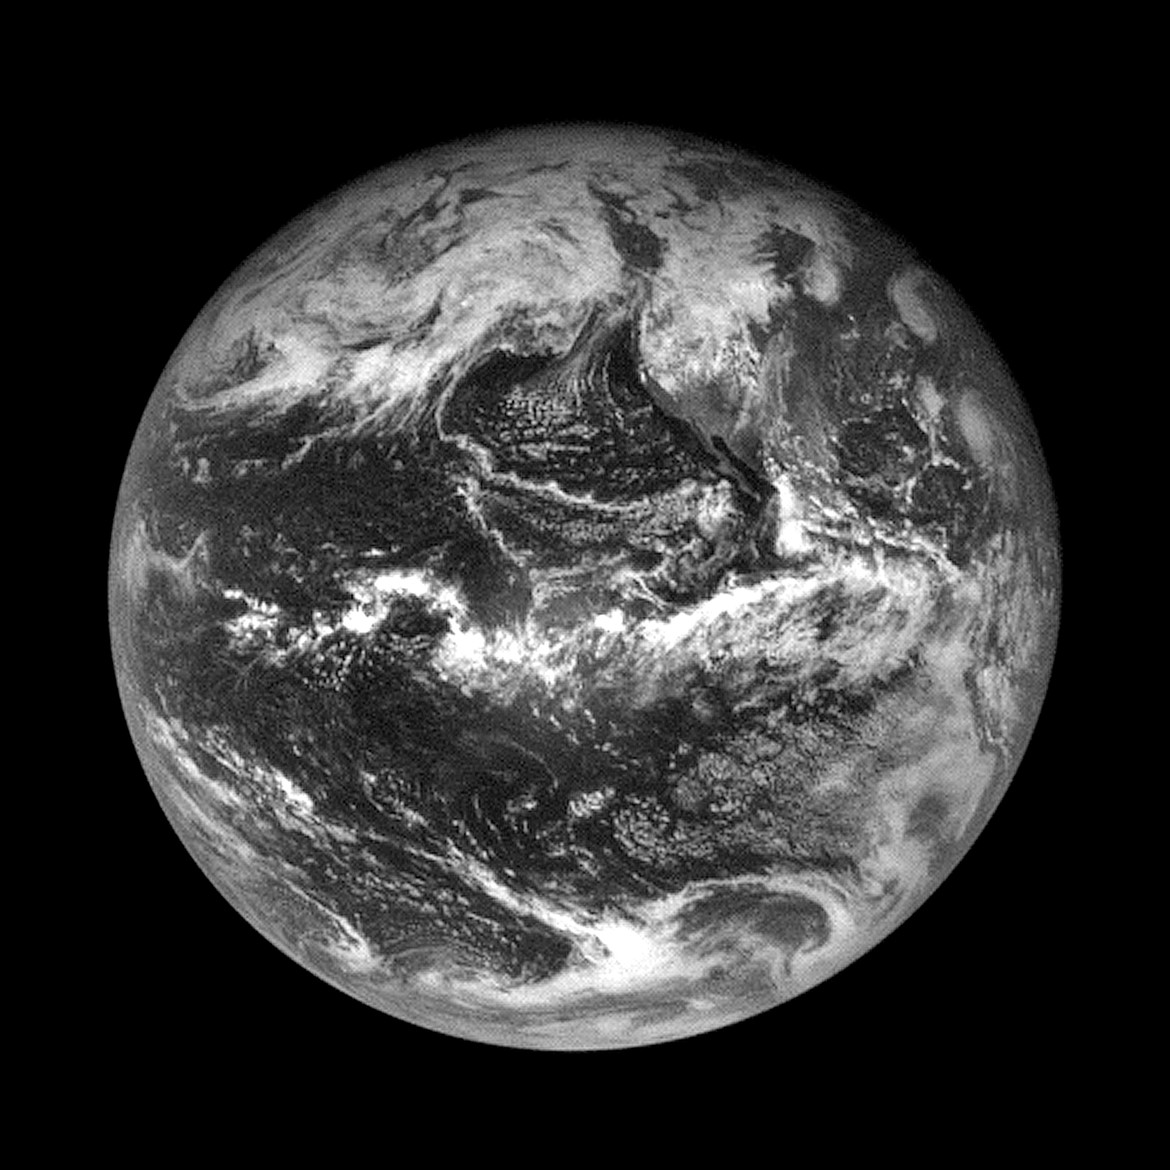 OSIRIS-REx took this image fo Earth from 110,000 kilometers away, after a flyby to change its trajectory. Credit: NASA/Goddard/University of Arizona/Lockheed Martin